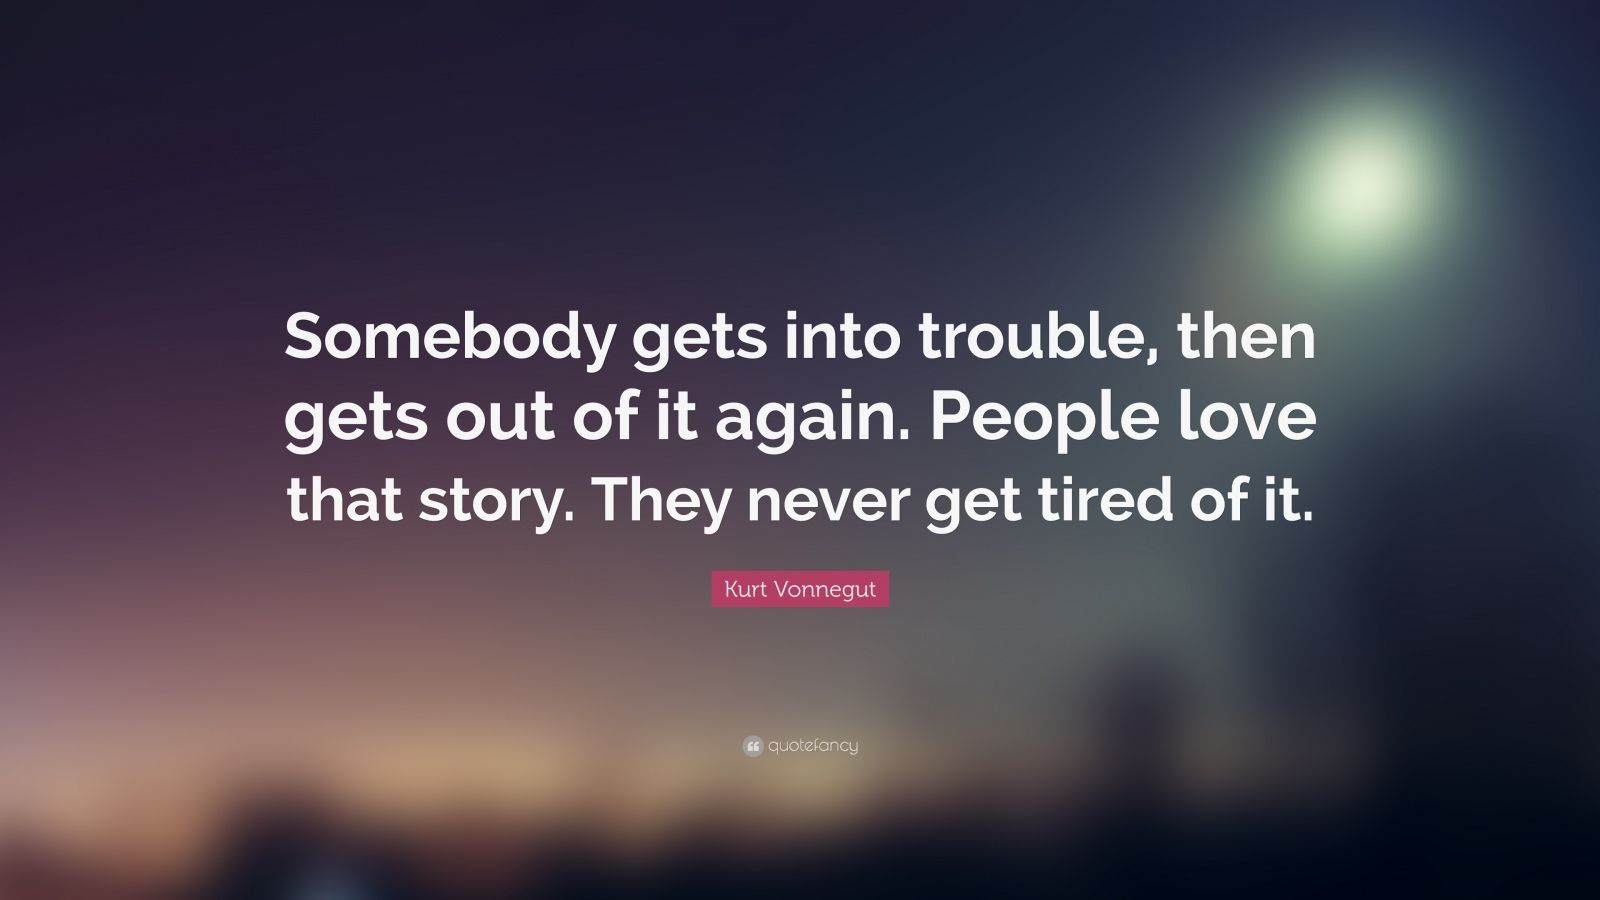 """Kurt Vonnegut Quote: """"Somebody gets into trouble, then gets out of it again. People love that story. They never get tired of it."""""""